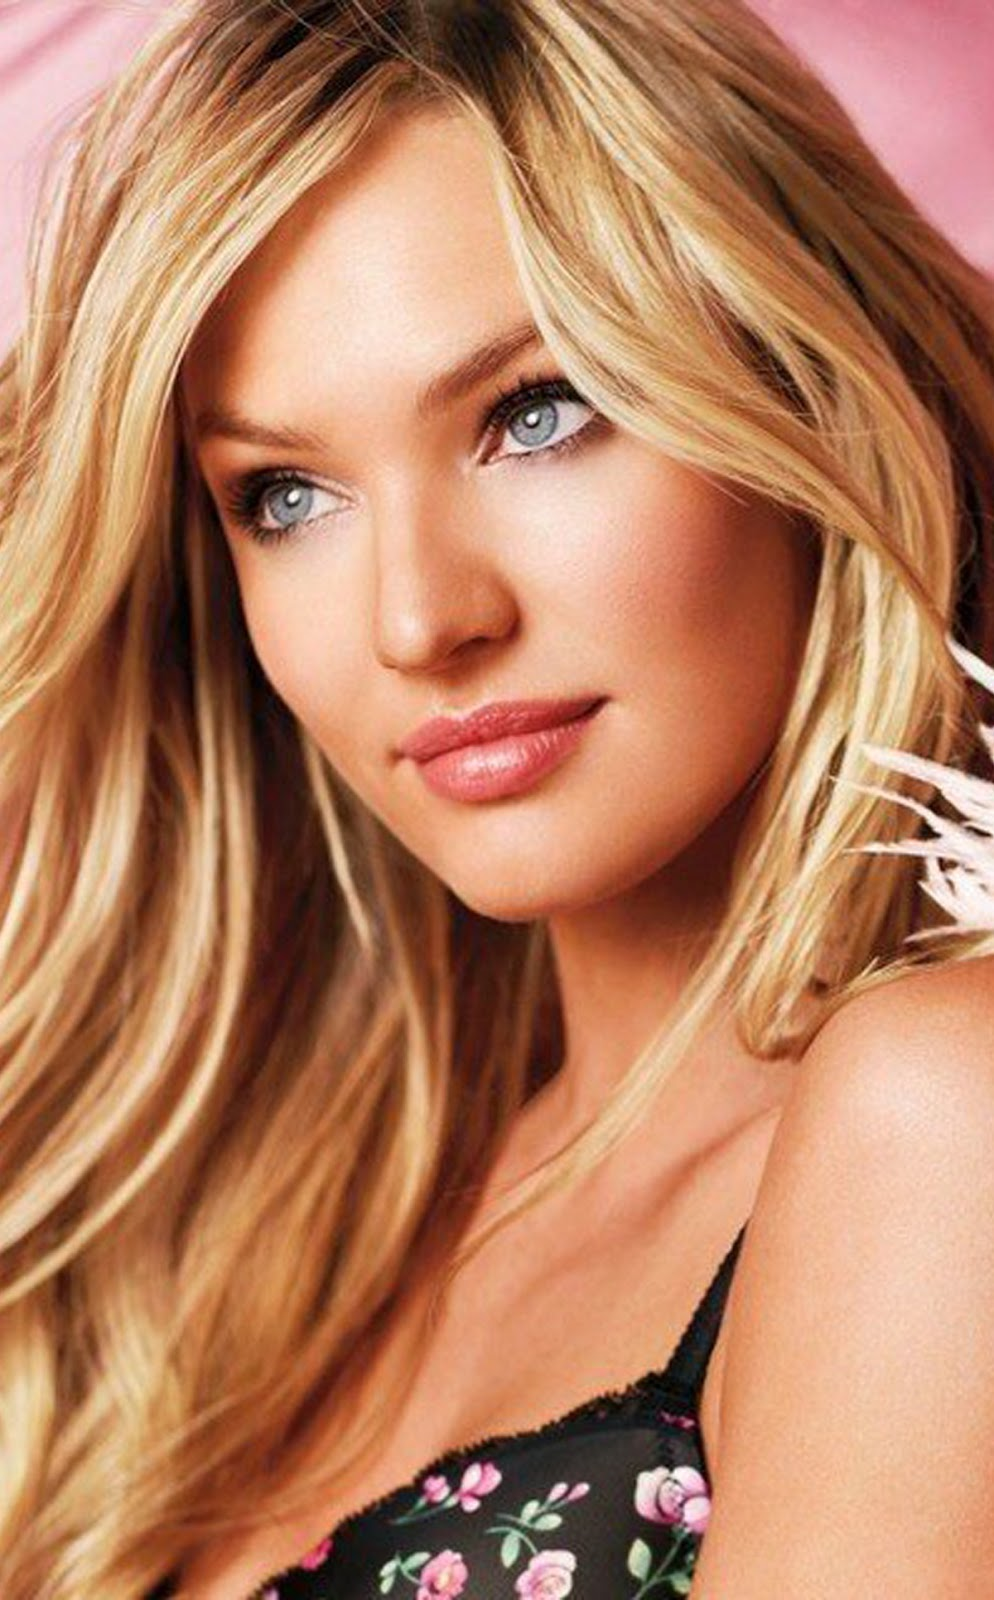 """Candice Swanepoel  Born  October 20, 1988 (age 24) Mooi River, Natal Province, South Africa Height 5 ft 9 in (1.75 m) Hair color Dark blonde Eye color Blue Measurements (US) 33-23-34.5 (EU) 84-59-88 Dress size (US) 0-2 ; (EU) 32-34 ; (UK) 4-6 Manager Ice Model Management IMG Models Why Not Model Agency Modelwerk Website Official web site : www.candiceswanepoel.com   Candice Swanepoel (born 20 October 1988) is a South African model best known for her work with Victoria's Secret. In 2012, she came in 10th on the Forbes top-earning models list.  Career   Candice Swanepoel was spotted by a model scout in a Durban flea market at age 15. Swanepoel's resume includes covers for Australian, Greek, Spanish, Portuguese, Japanese and Italian Vogue, Brazilian, German and South African ELLE, British, South African, Romanian, Mexican and Chinese GQ, Turkish, Spanish, Russian, Czech and Argentinian Harper's Bazaar, i-D, Lush and Ocean Drive (U.S.) and advertisements for Nike, Diesel, Guess?, Tommy Hilfiger, Tom Ford, Prabal Gurung, Swarovski, Colcci, True Religion, Ralph Lauren, Miu Miu, Juicy Couture and Versace. Swanepoel has walked the runway for Tommy Hilfiger, Dolce and Gabbana, Michael Kors, Donna Karan, Giambattista Valli, Jason Wu, Prabal Gurung, Rag & Bone, Oscar de la Renta, Fendi, Chanel, Elie Saab, Diane von Fürstenberg, Sportmax, Betsey Johnson, Stella McCartney, Viktor and Rolf, Givenchy, Jean Paul Gaultier, Christian Dior, Blumarine and numerous other designers, as well as for Victoria's Secret since 2007. In addition to appearing in the lingerie brand's commercials, she was a featured model in the 2010 """"SWIM"""" catalog, along with Lindsay Ellingson, Rosie Huntington-Whiteley, Behati Prinsloo and Erin Heatherton.In 2010, Swanepoel became a Victoria's Secret Angel. Swanepoel modeled for the Kardashians' 2010 swimwear line. On 12 August 2010 Swanepoel officially opened the first Victoria's Secret retail store in Canada, at West Edmonton Mall, Edmonton. In 2013, Swanepoel"""